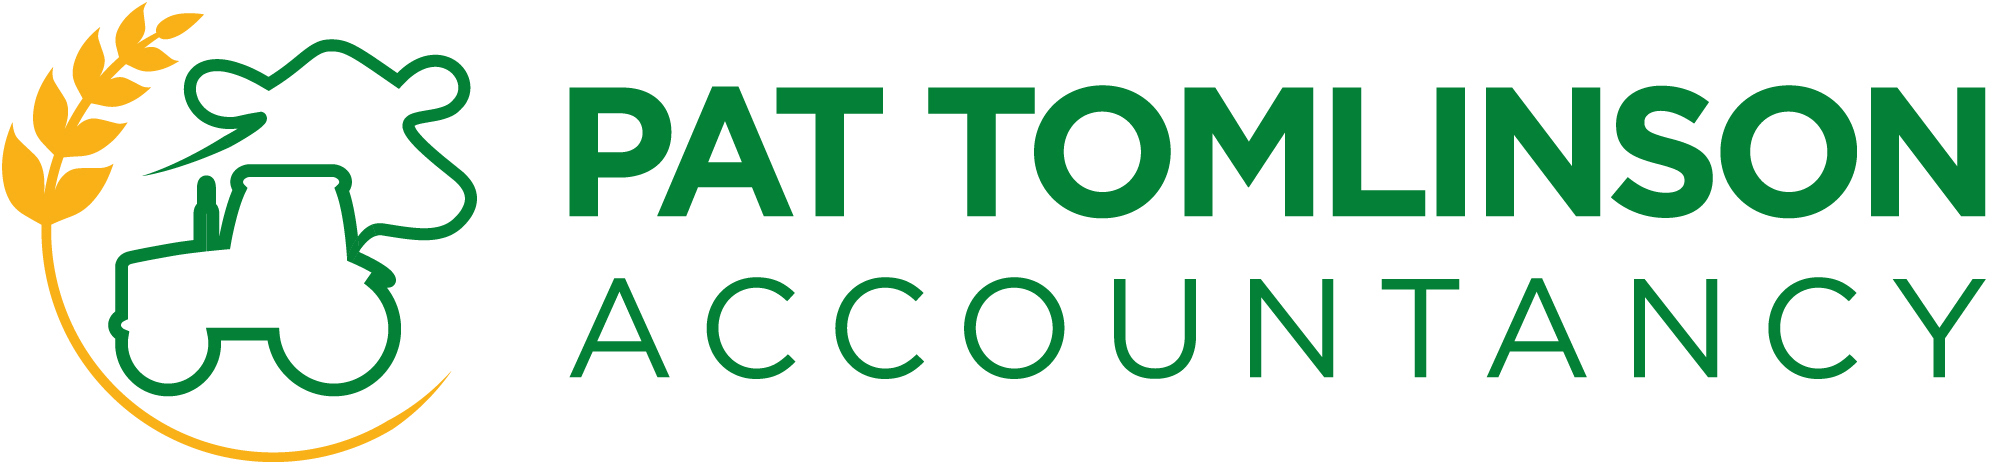 Pat Tomlinson Accountancy